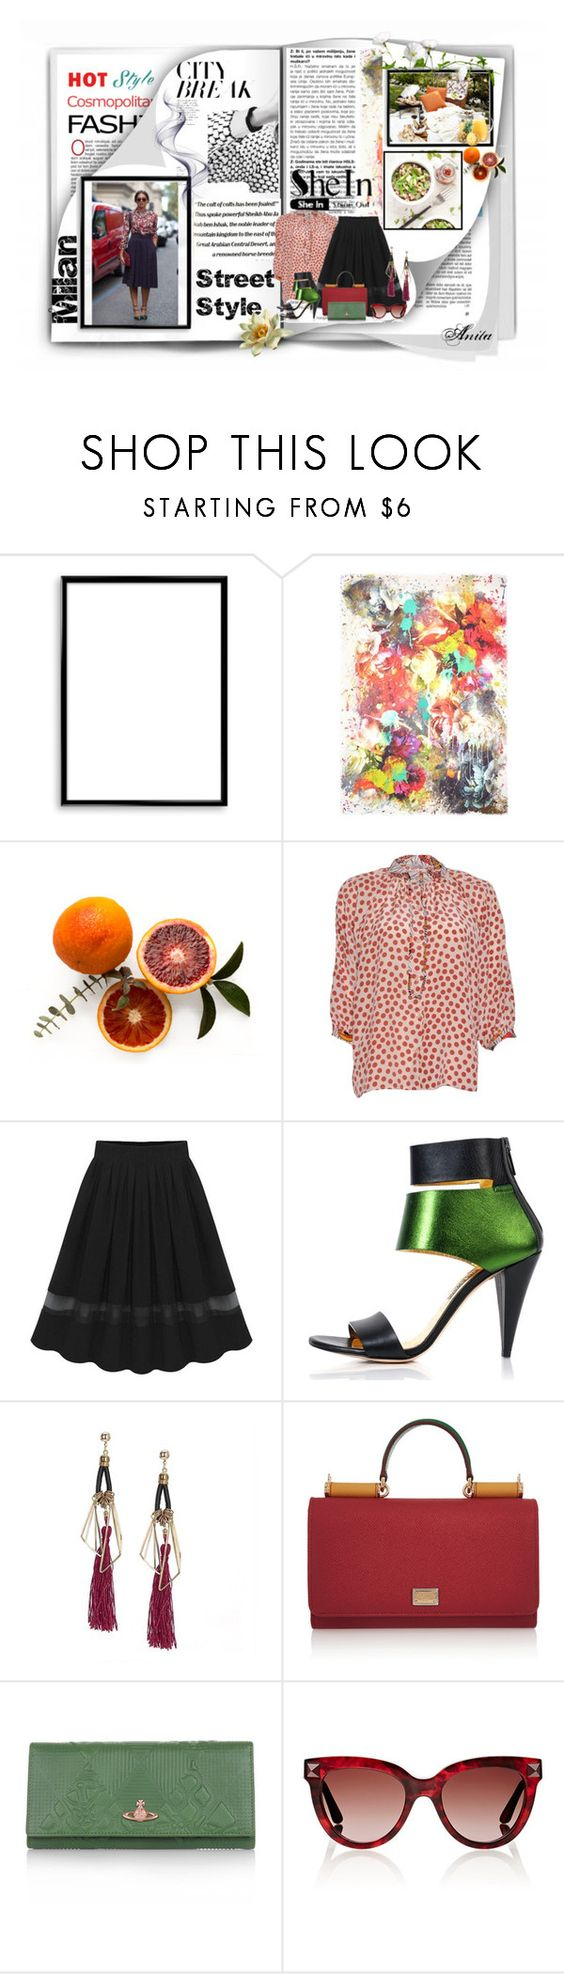 """""""Milan Street Style"""" by wodecai ❤ liked on Polyvore featuring Bomedo, Franco Ferrari, Tucker, Kim Kwang, Dolce&Gabbana, Vivienne Westwood and Valentino"""